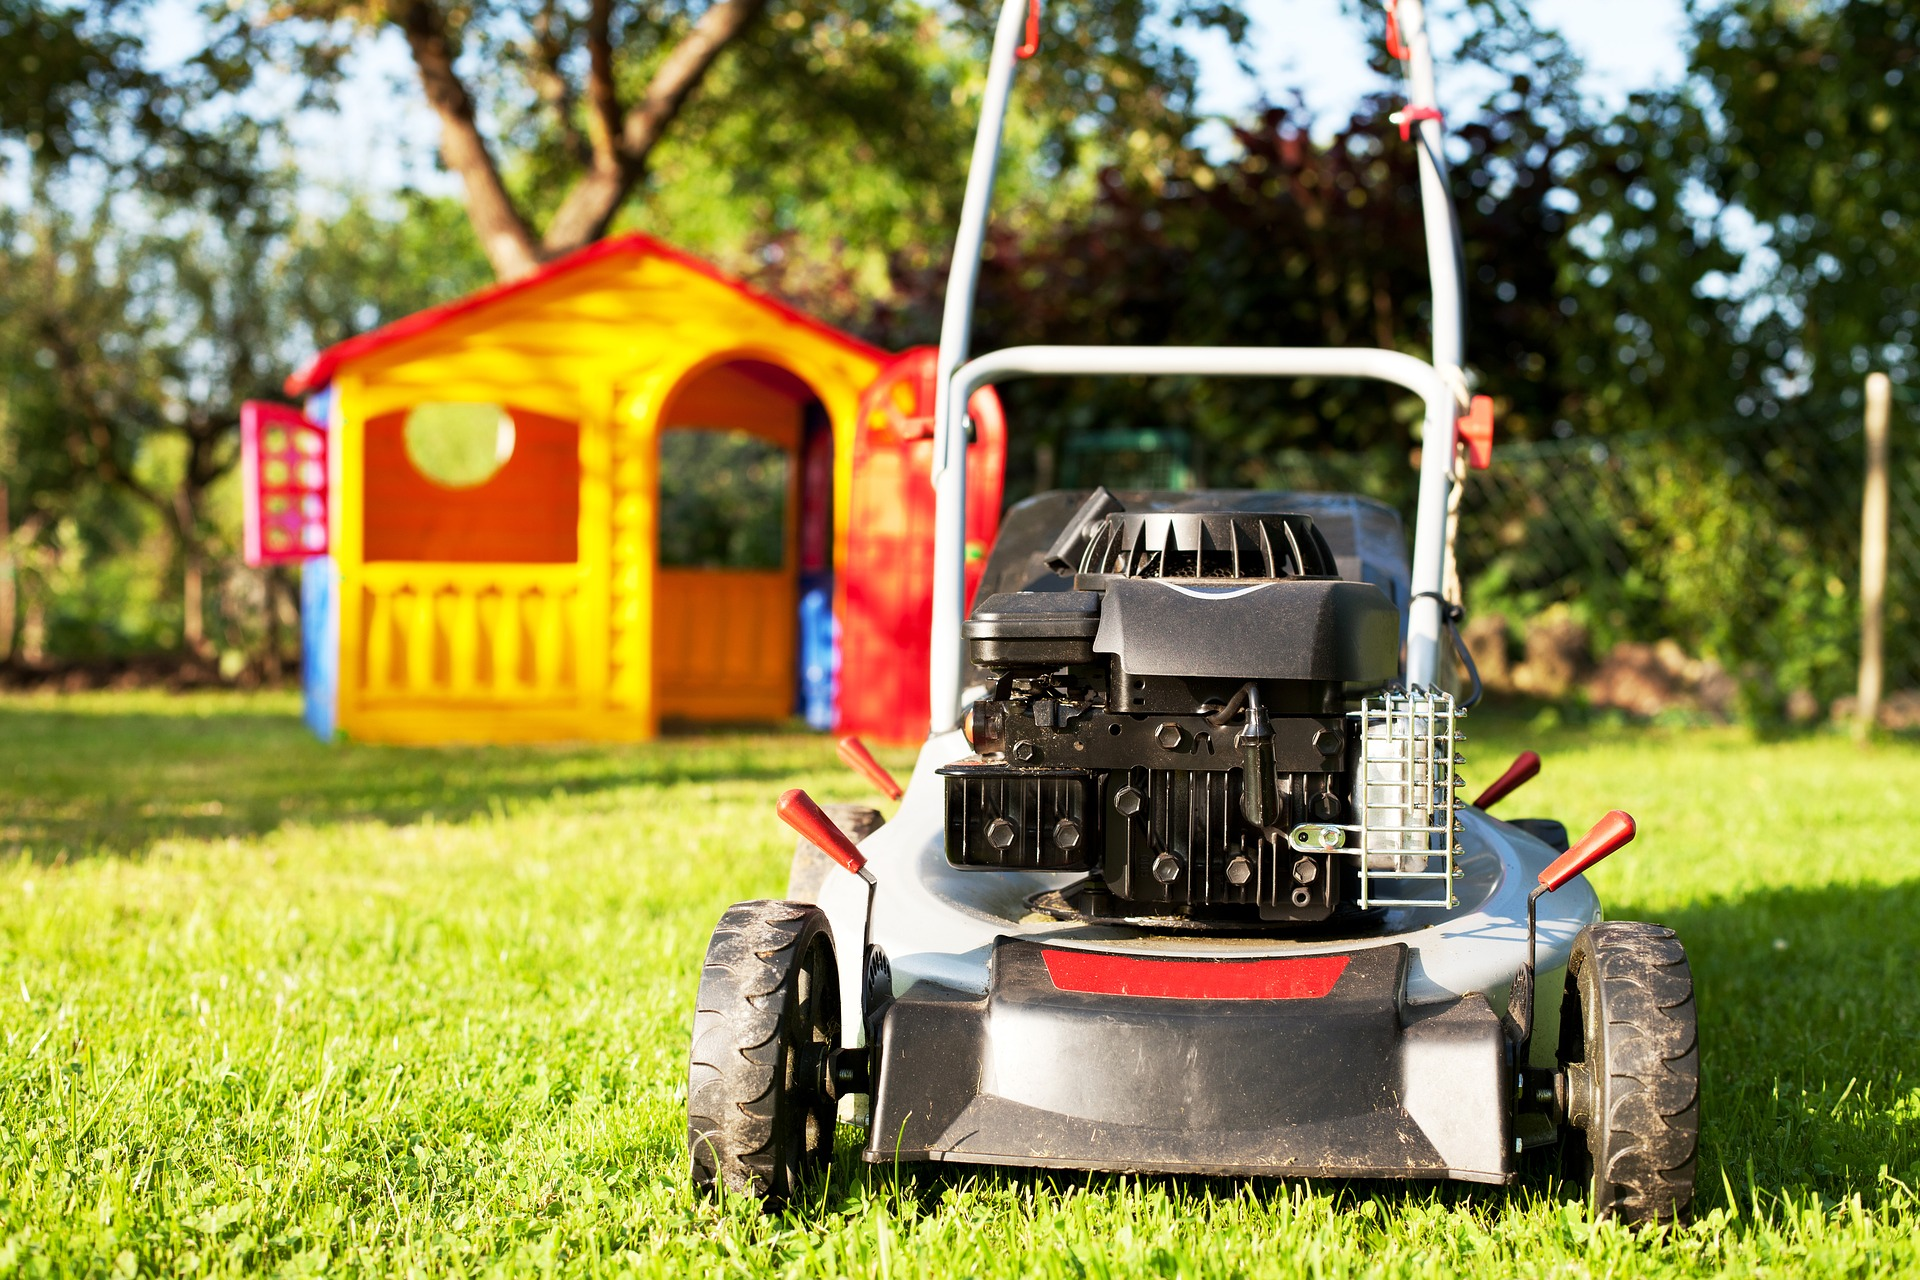 lawn, lawncare, lawn mower, grass, kids